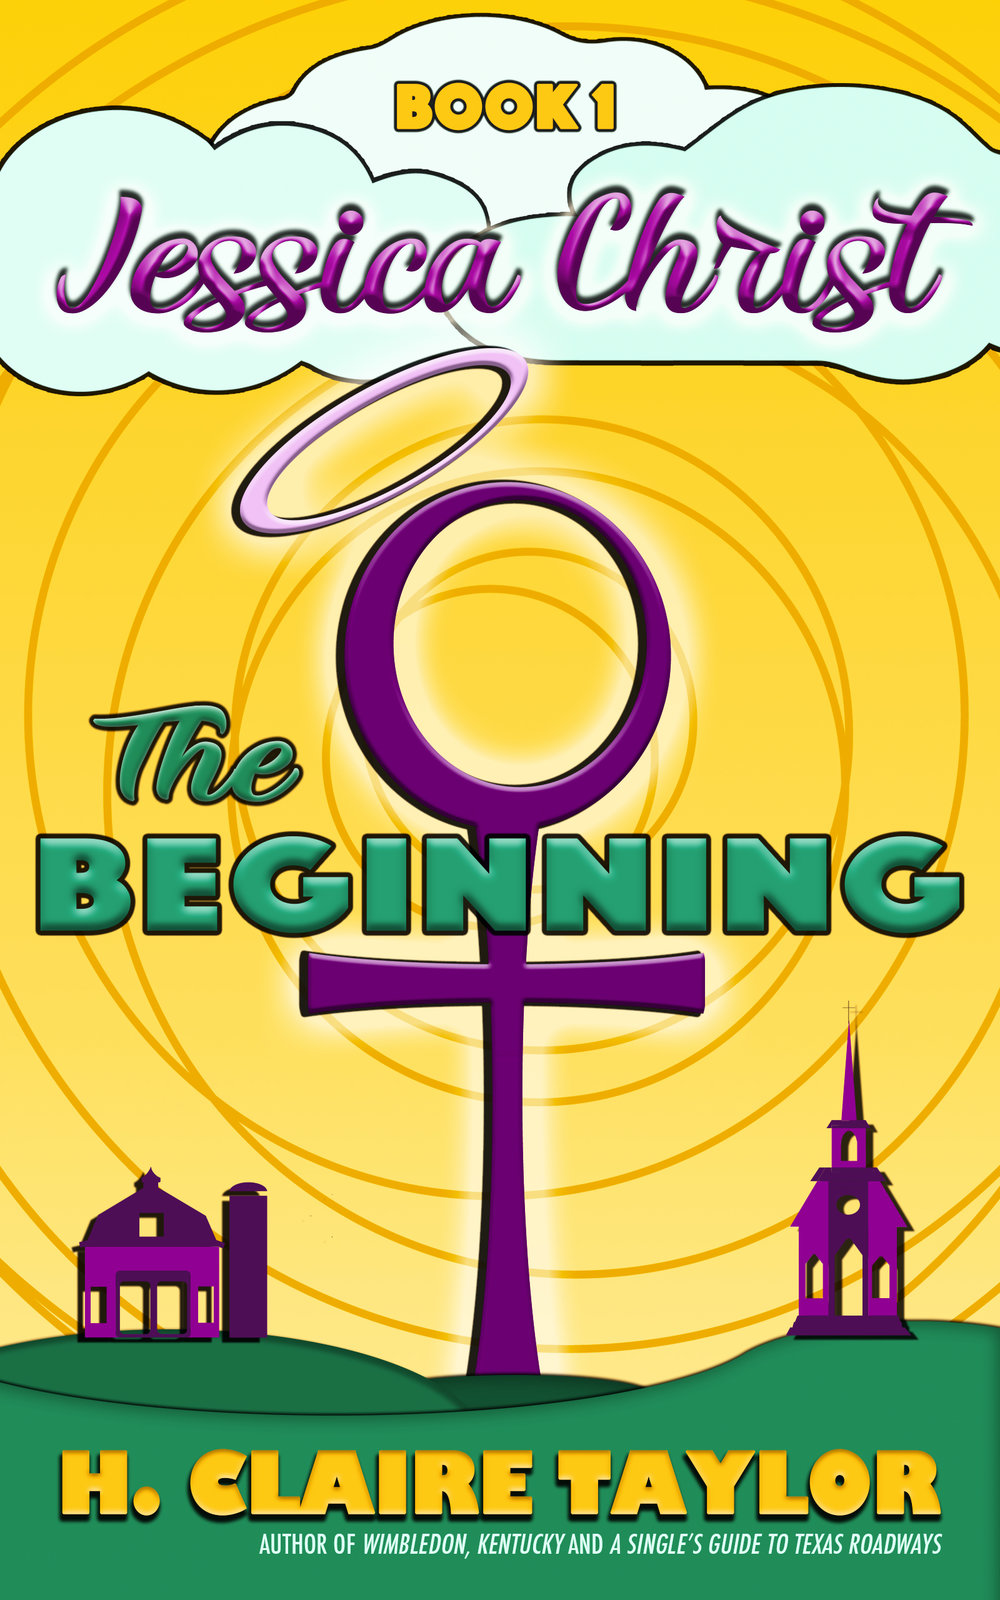 Jessica Christ Book 1 Cover 2.jpg